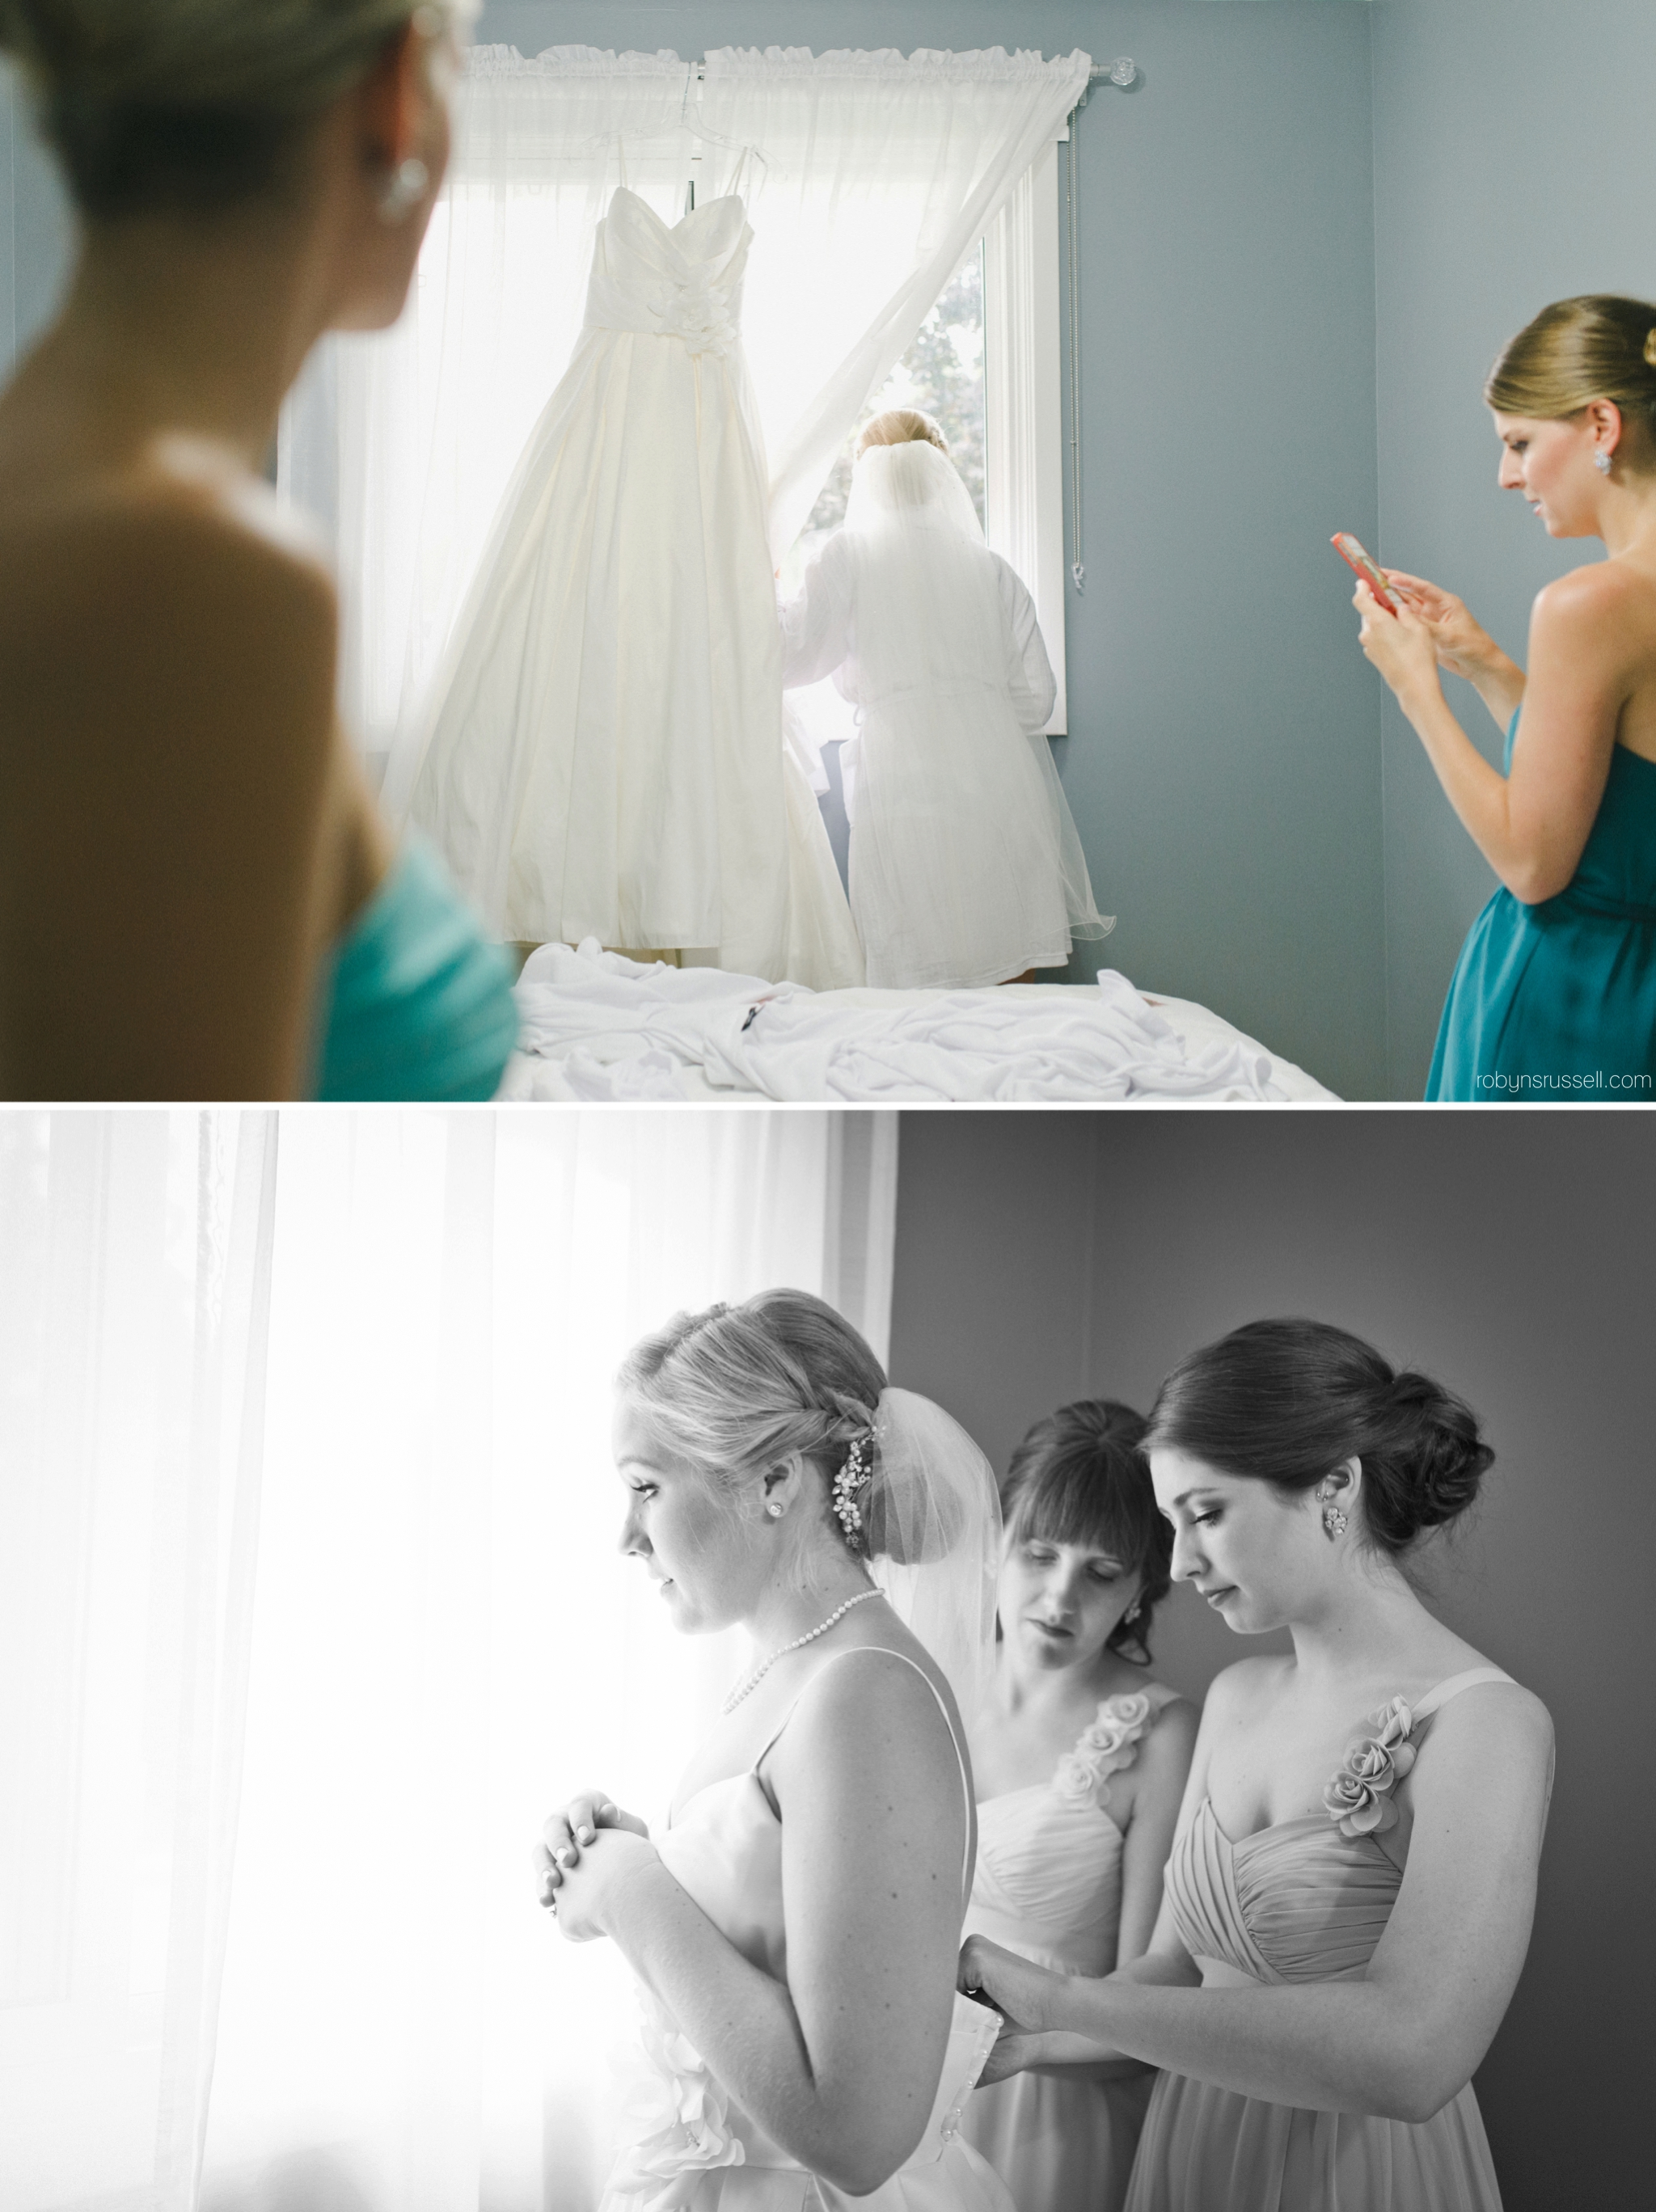 0054-bride-putting-on-dress-burlington-wedding.jpg